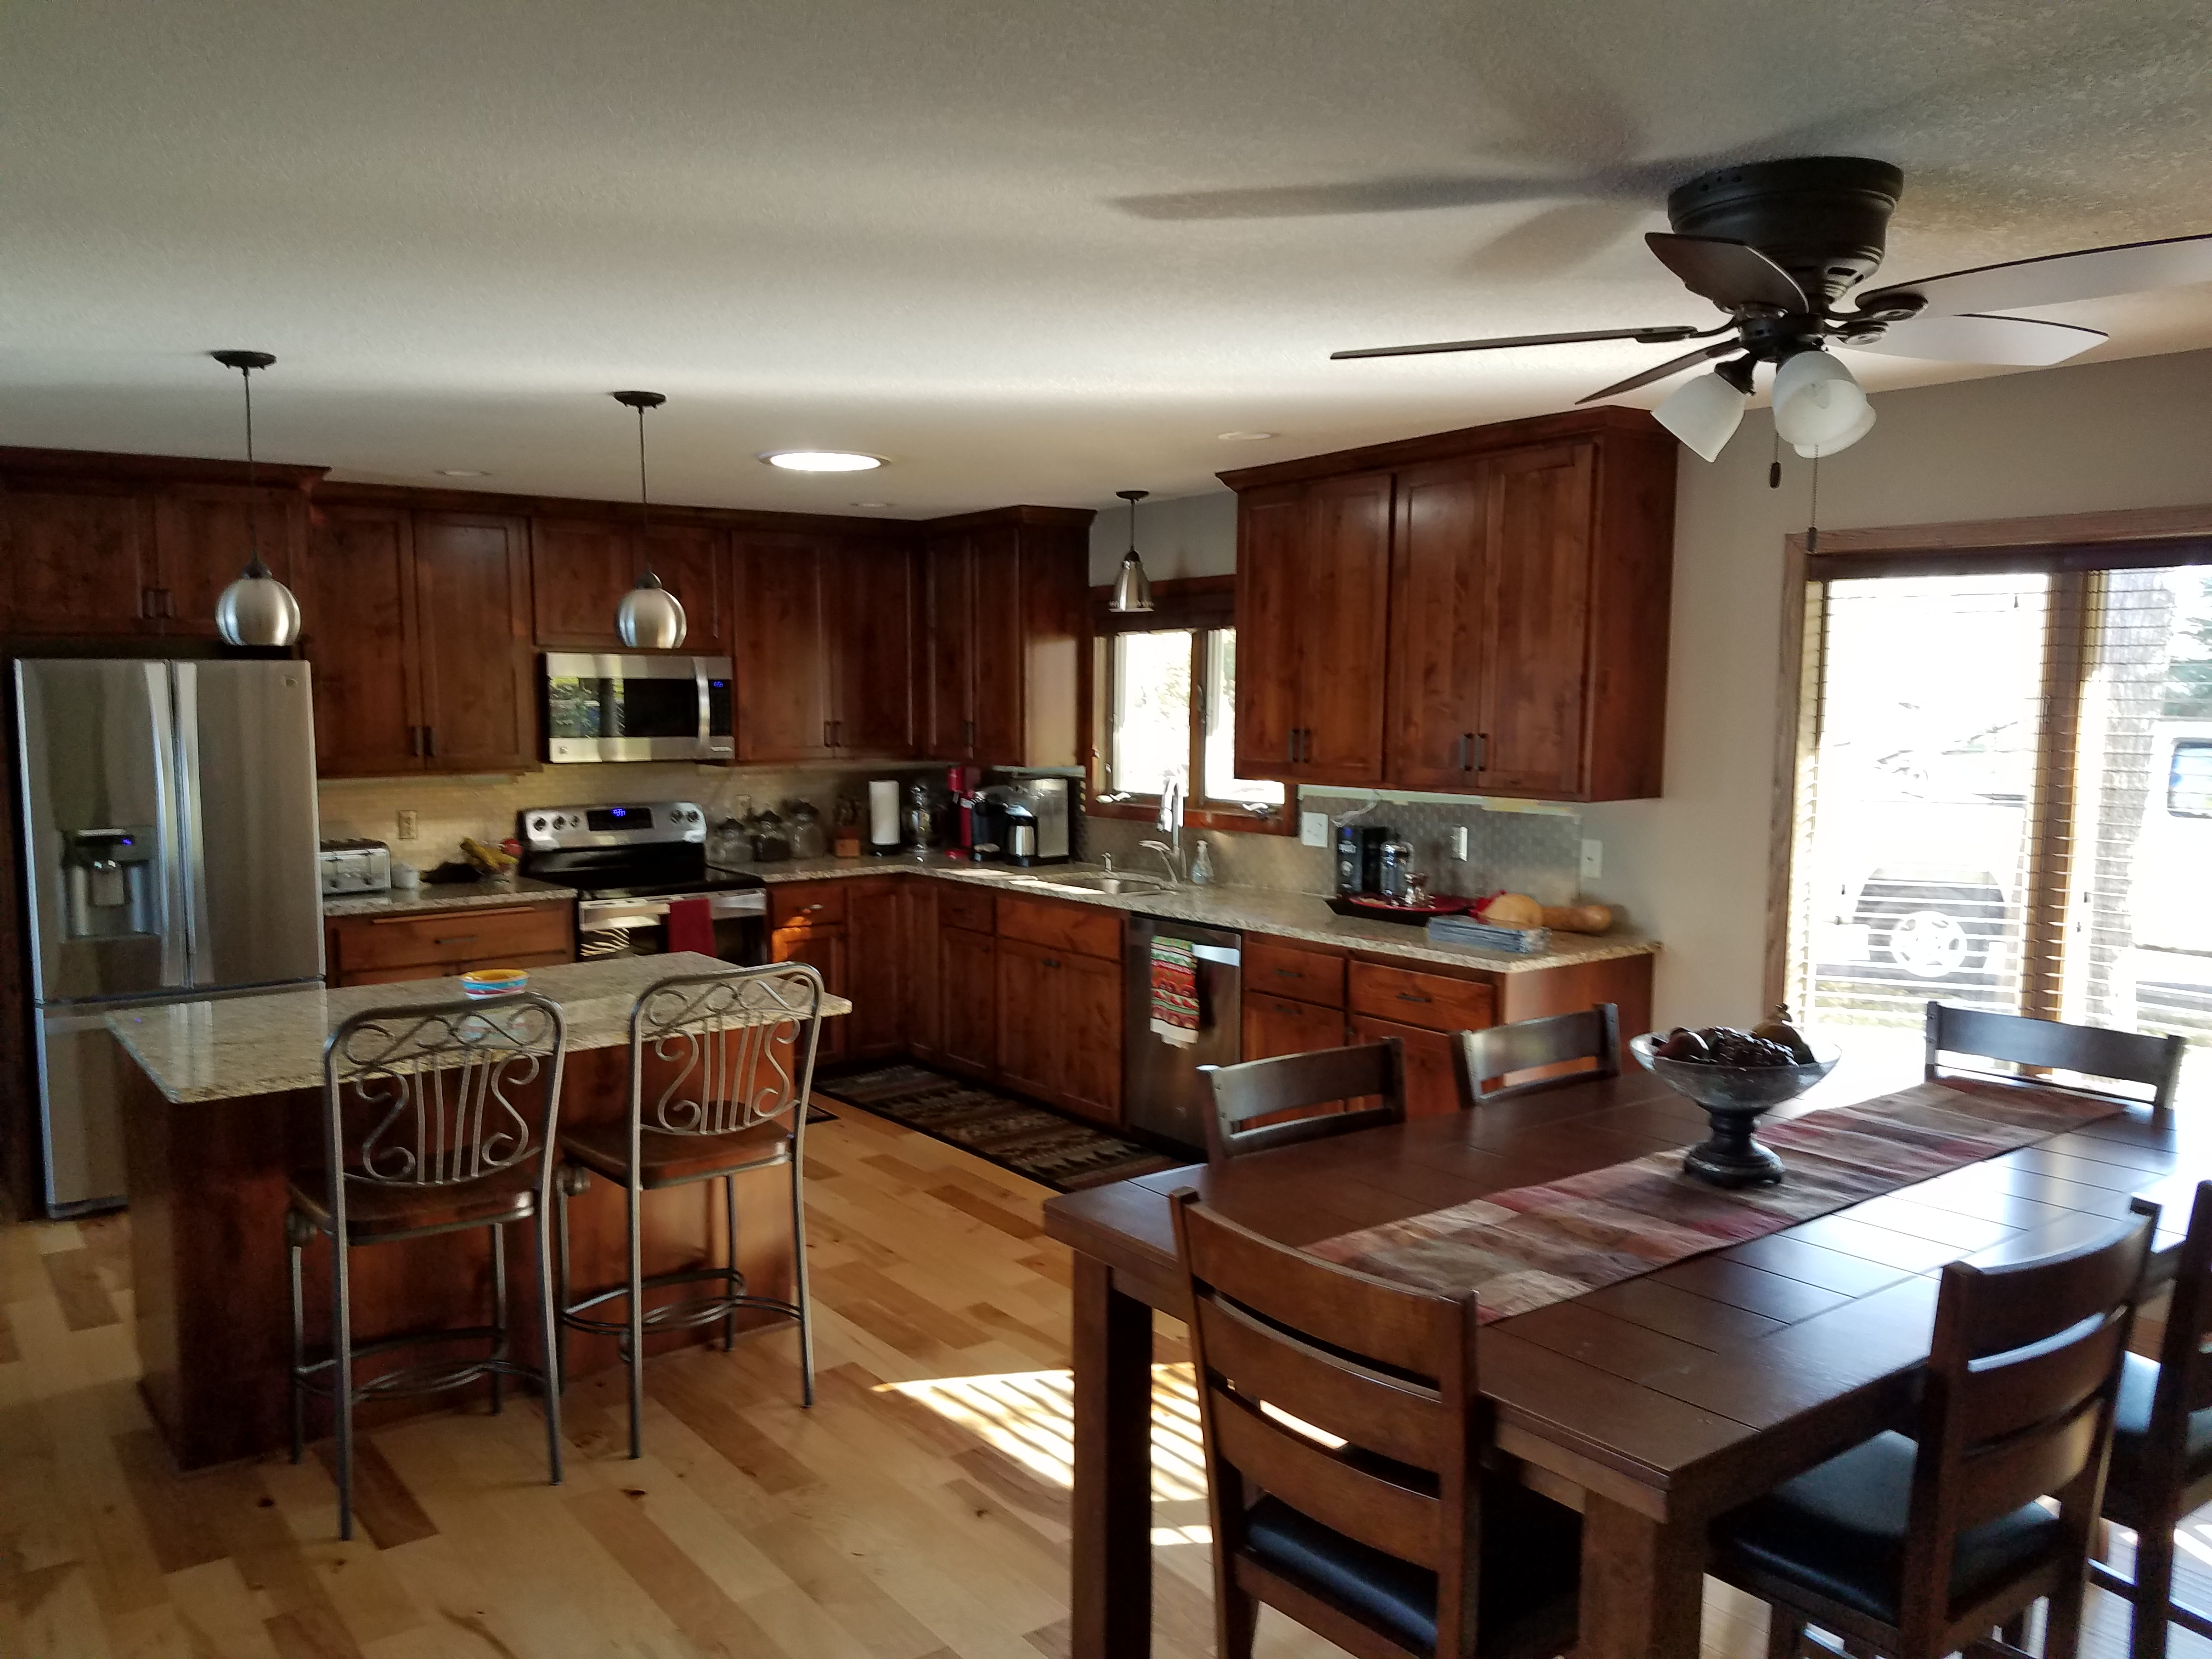 Home Remodeling Gallery Otsego Maple Grove Minneapolis Mn Stafford Construction Llc